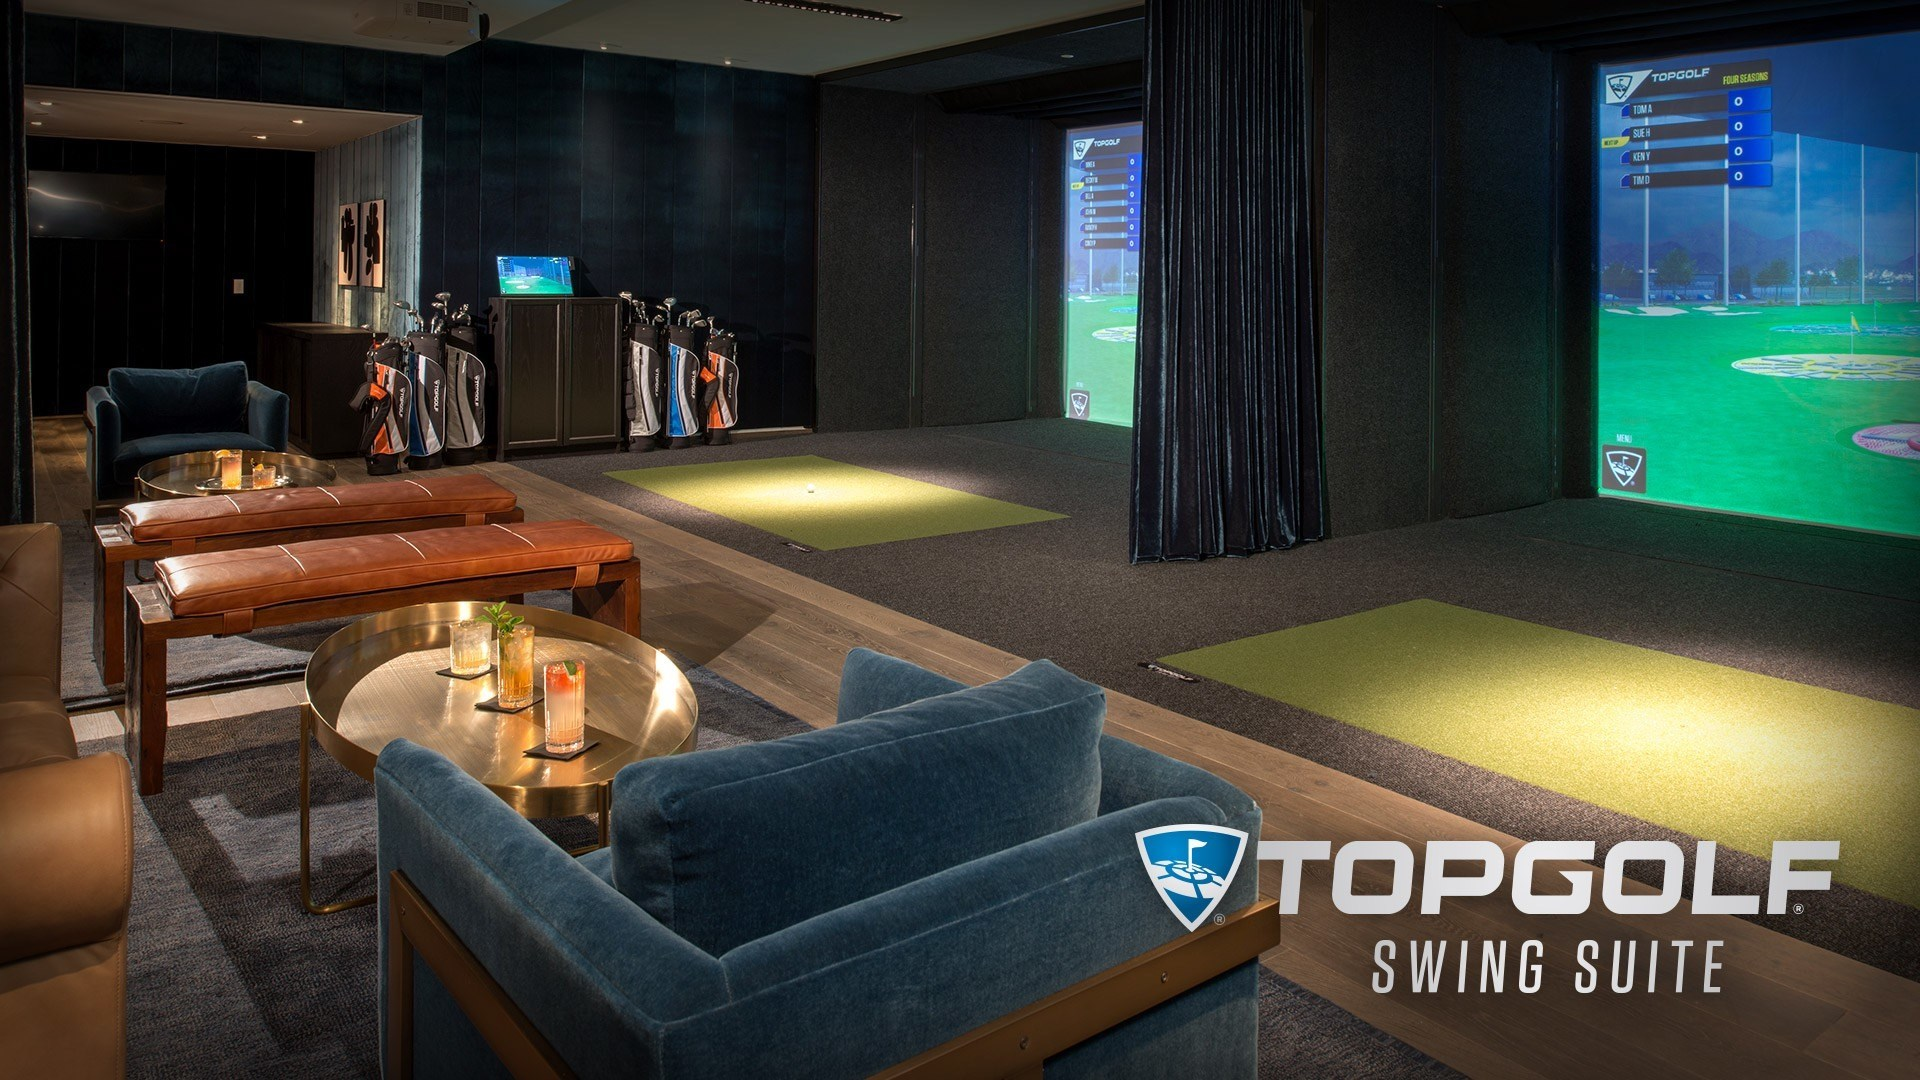 First Topgolf Swing Suite In Michigan Opening At Mgm Grand Detroit This Fall Jul 27 2017